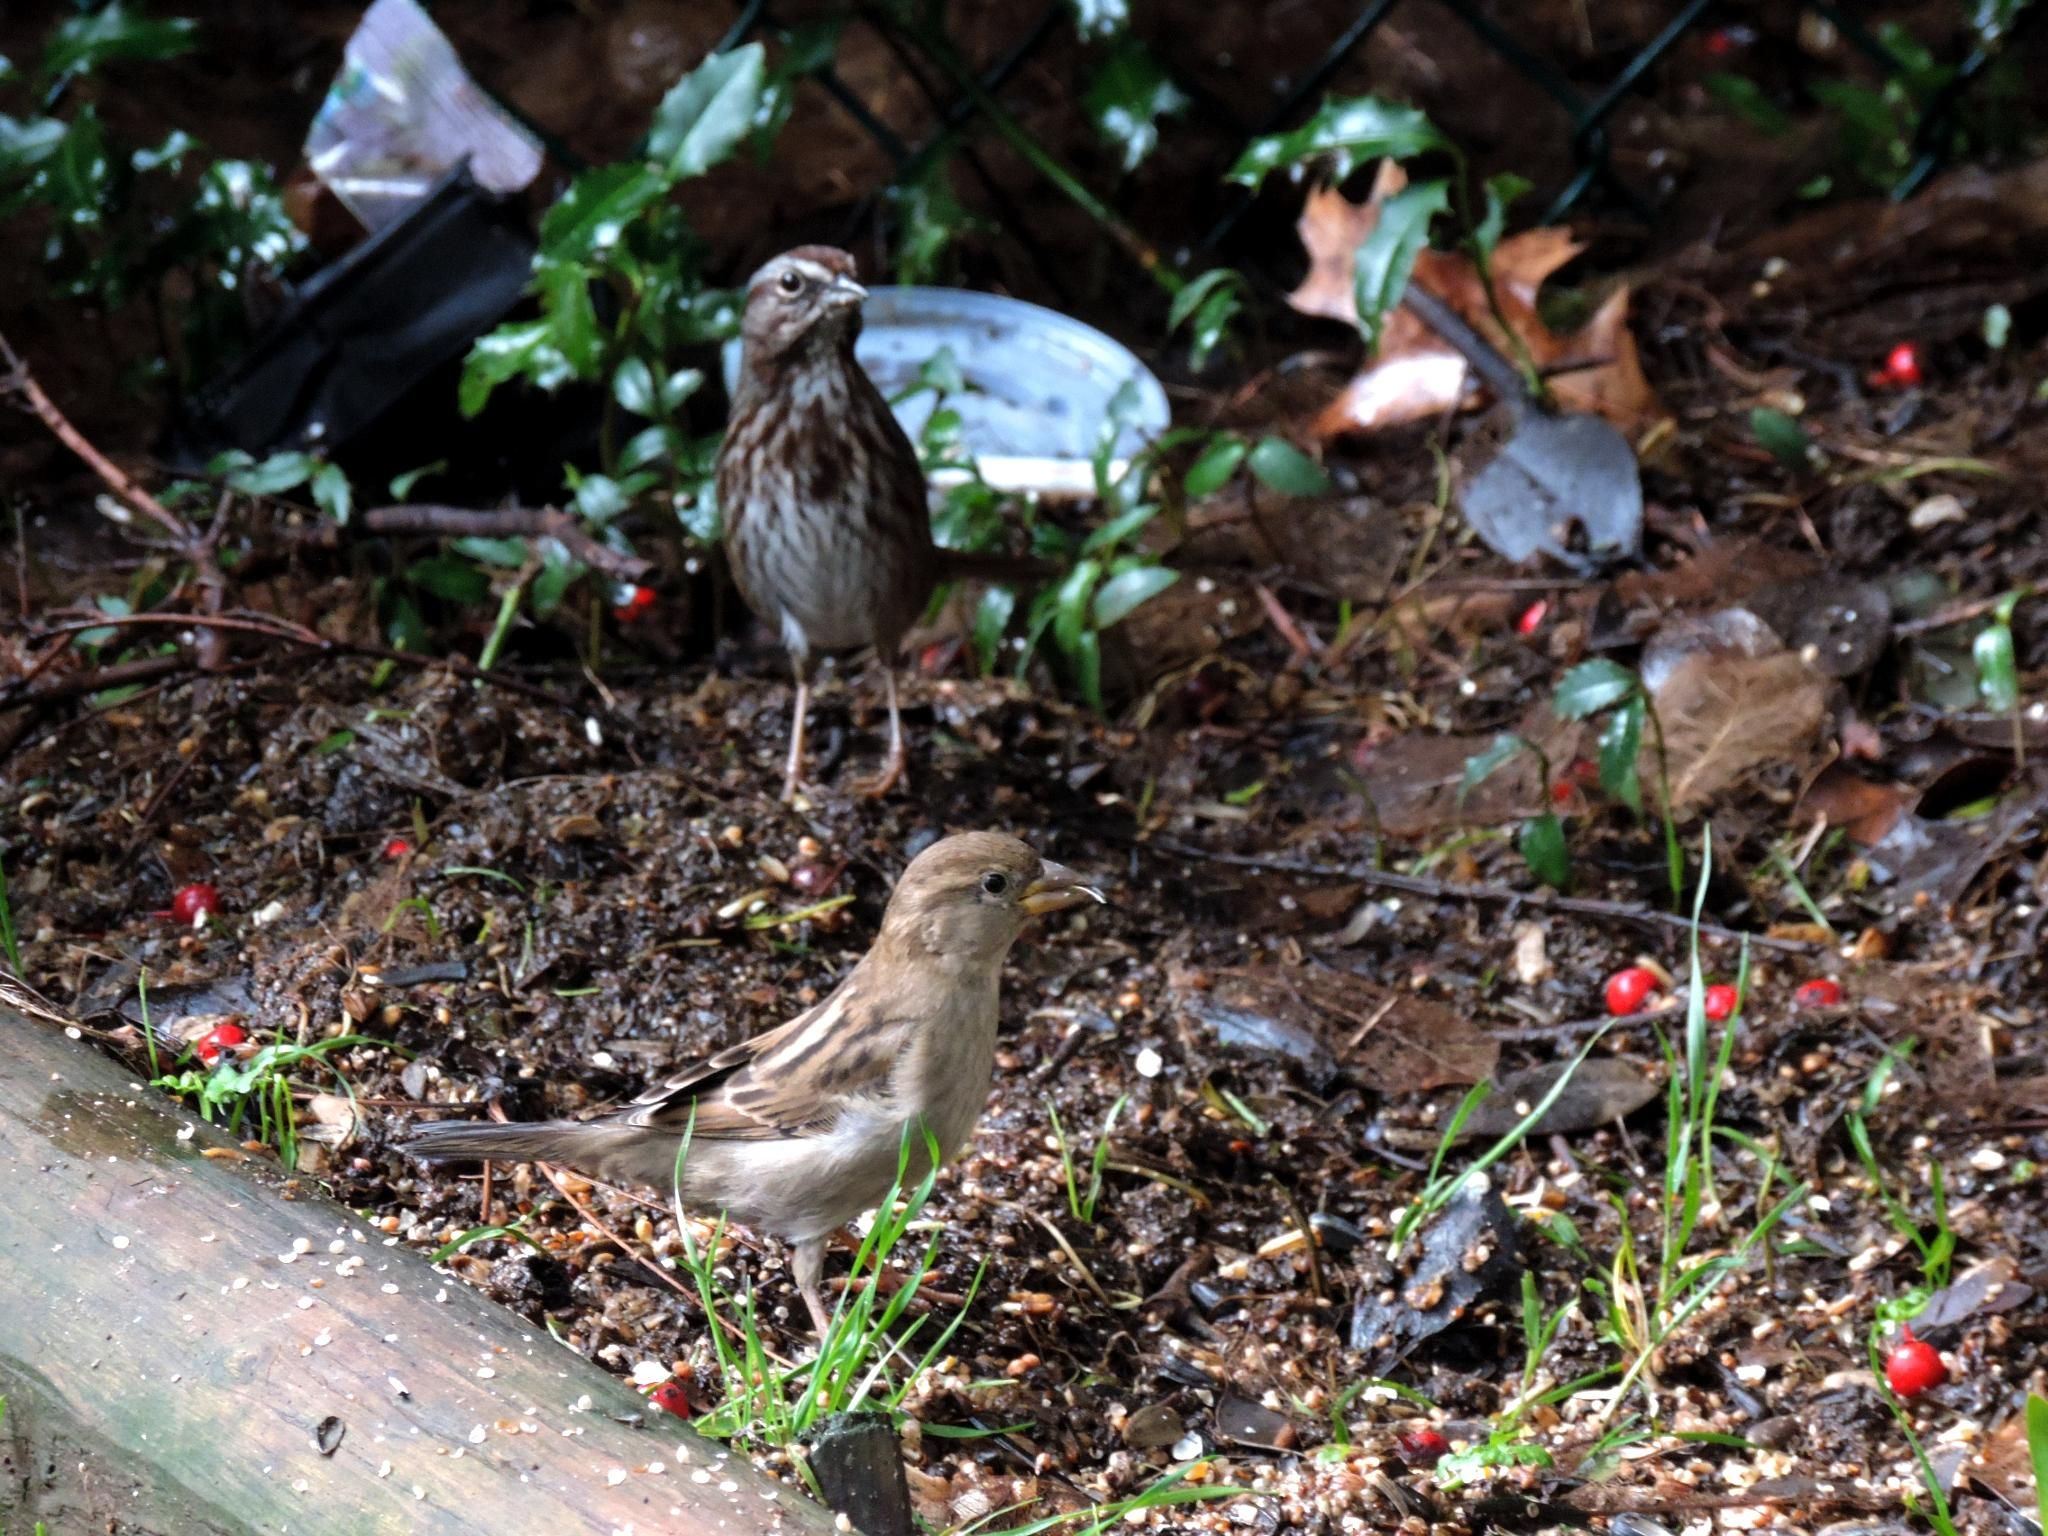 2 sparrows by henrywall63